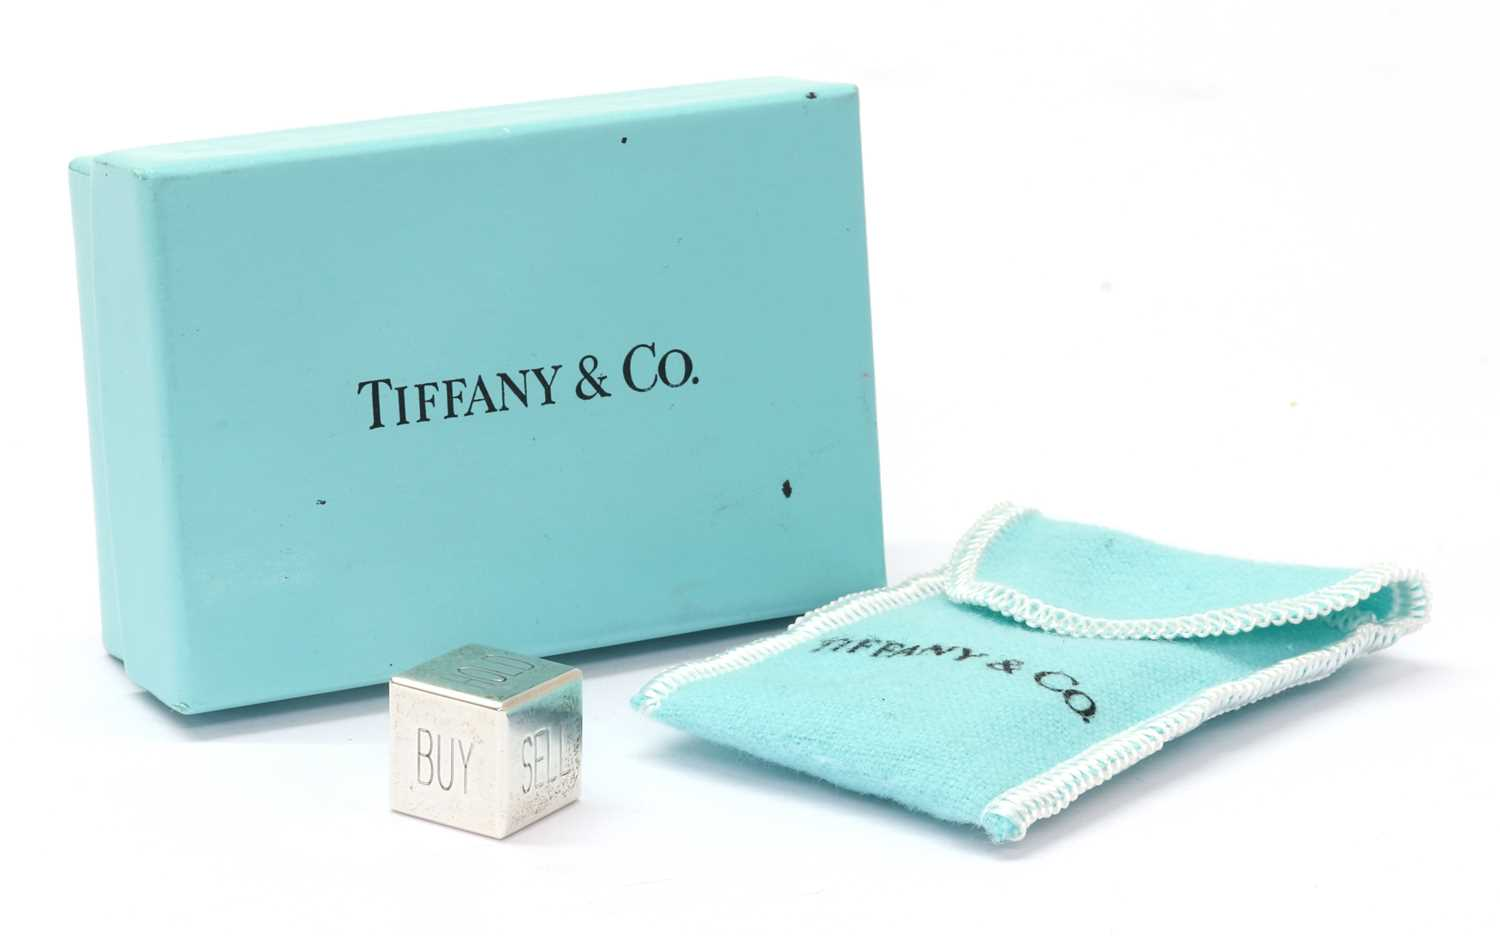 A sterling silver Tiffany & Co. 'Buy, Sell, Hold' decision maker die,